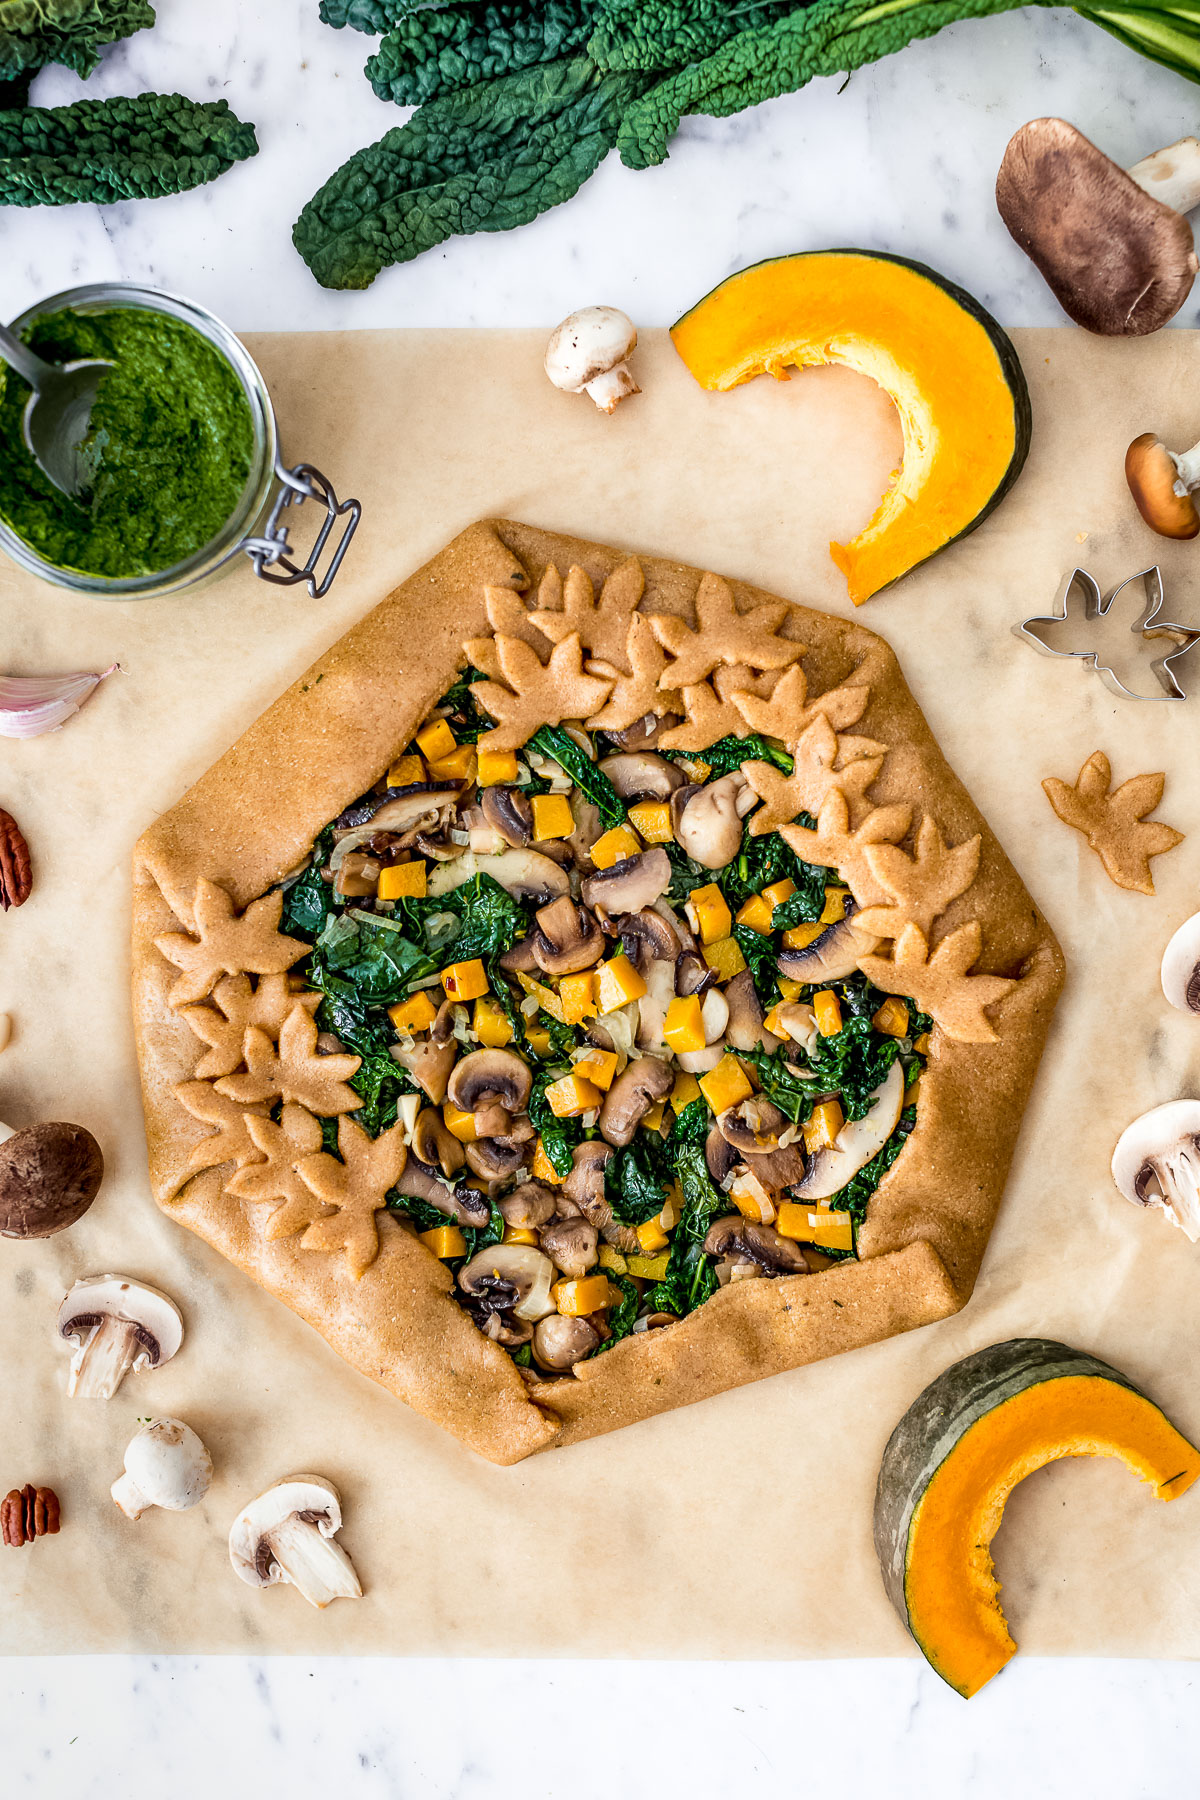 VEGAN Mushroom #PUMPKIN GALETTE with kale pesto and vegetables Torta salata zucca e funghi vegan con verdure e pesto di cavolo nero